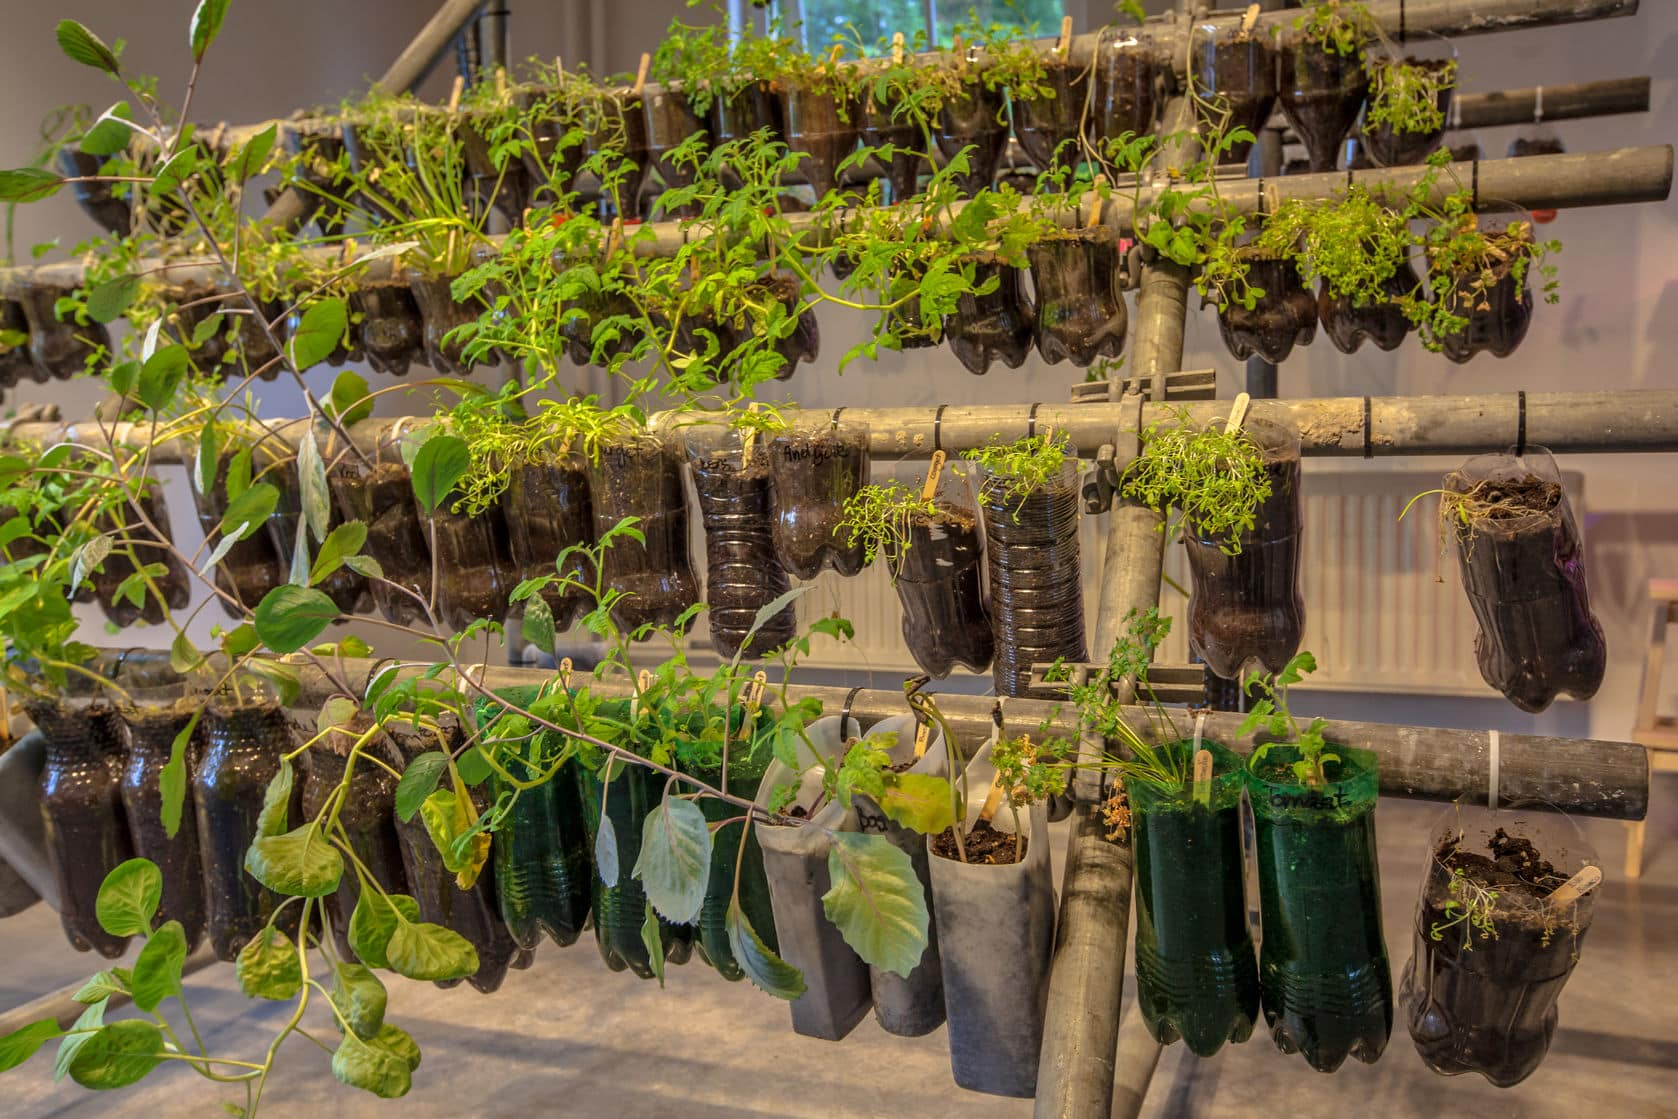 Indoor Sustainable Garden Made of Recyclable Materials - Indoor Herb and Vegetable Garden Made of Plastic Bottles   https://physiologicnyc.com/integrative-medicine-wellness/